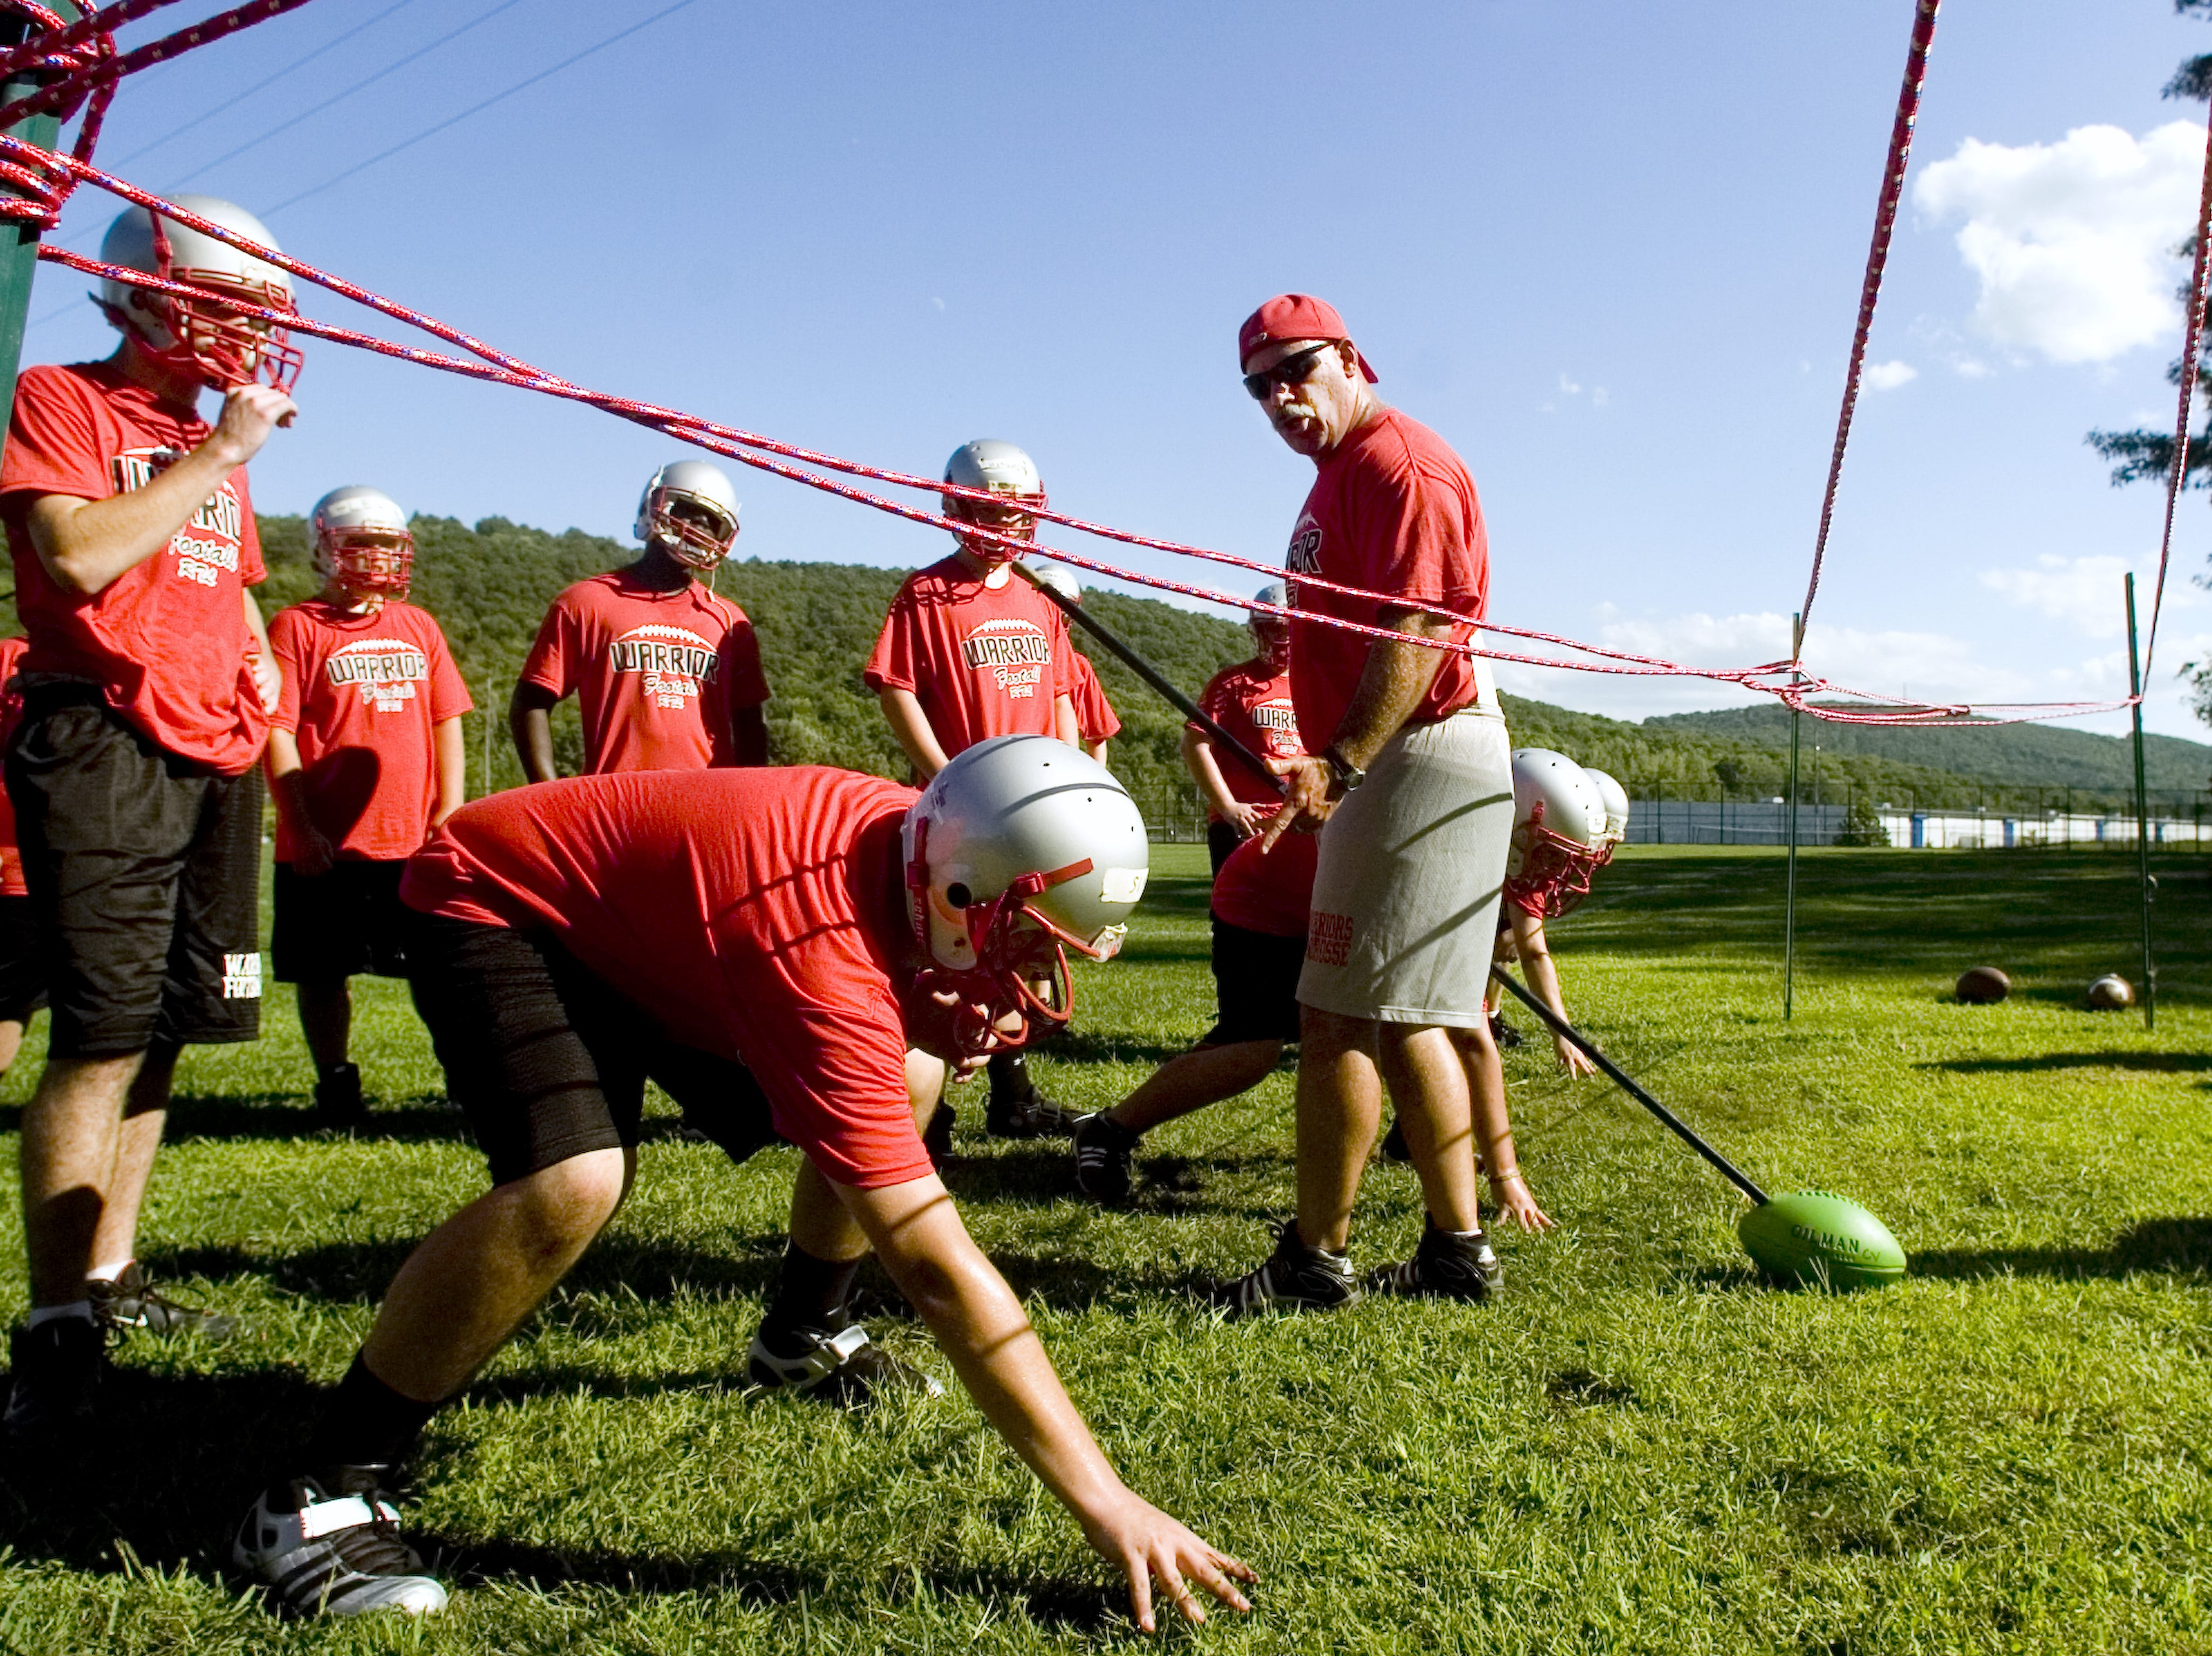 From 2010: The Chenango Valley High School Varsity football team takes instruction from Mike Turna, the team's line coach, during the first day of practice on Monday, late afternoon.